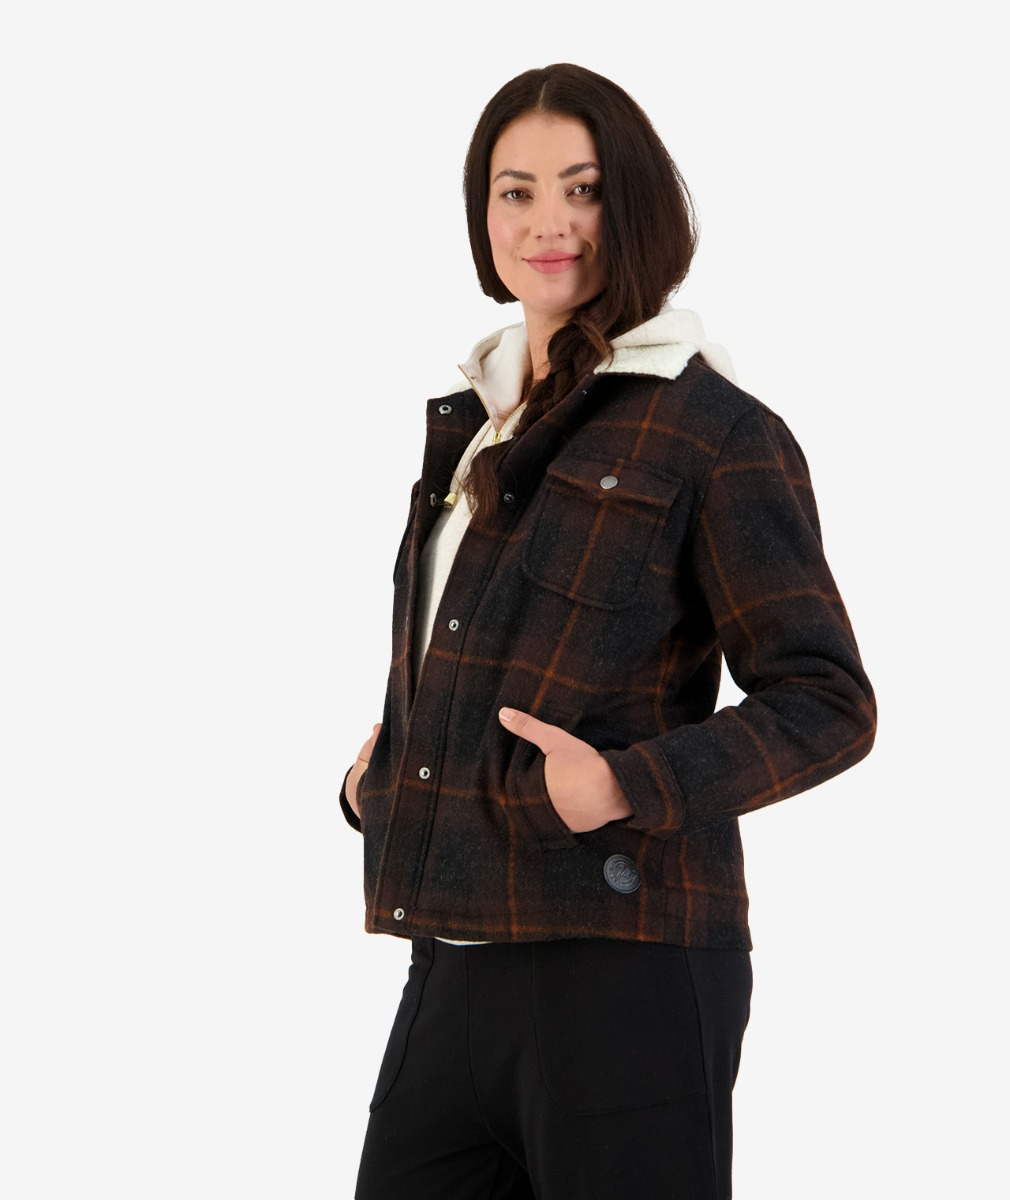 Women's Merino and wool jacket in double brown check